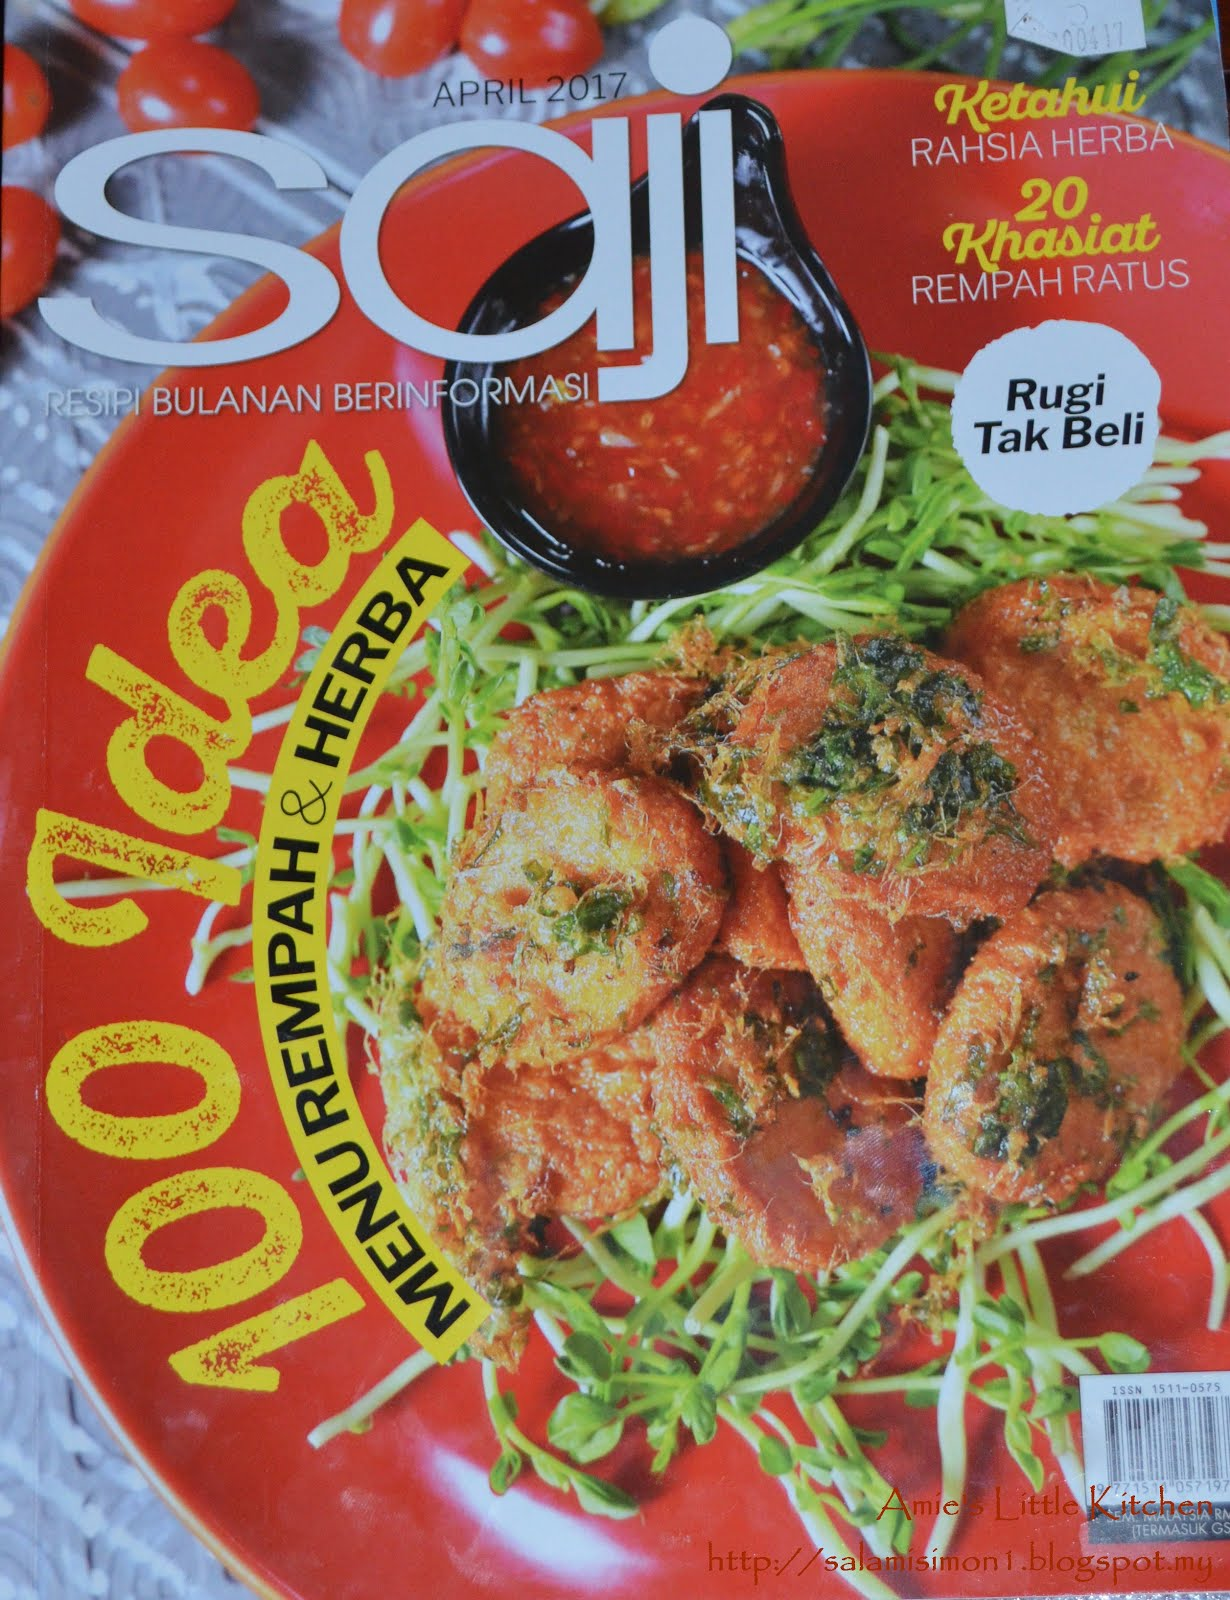 RESEPI AMIE'S LITTLE KITCHEN DI MAJALAH SAJI EDISI APRIL 2017